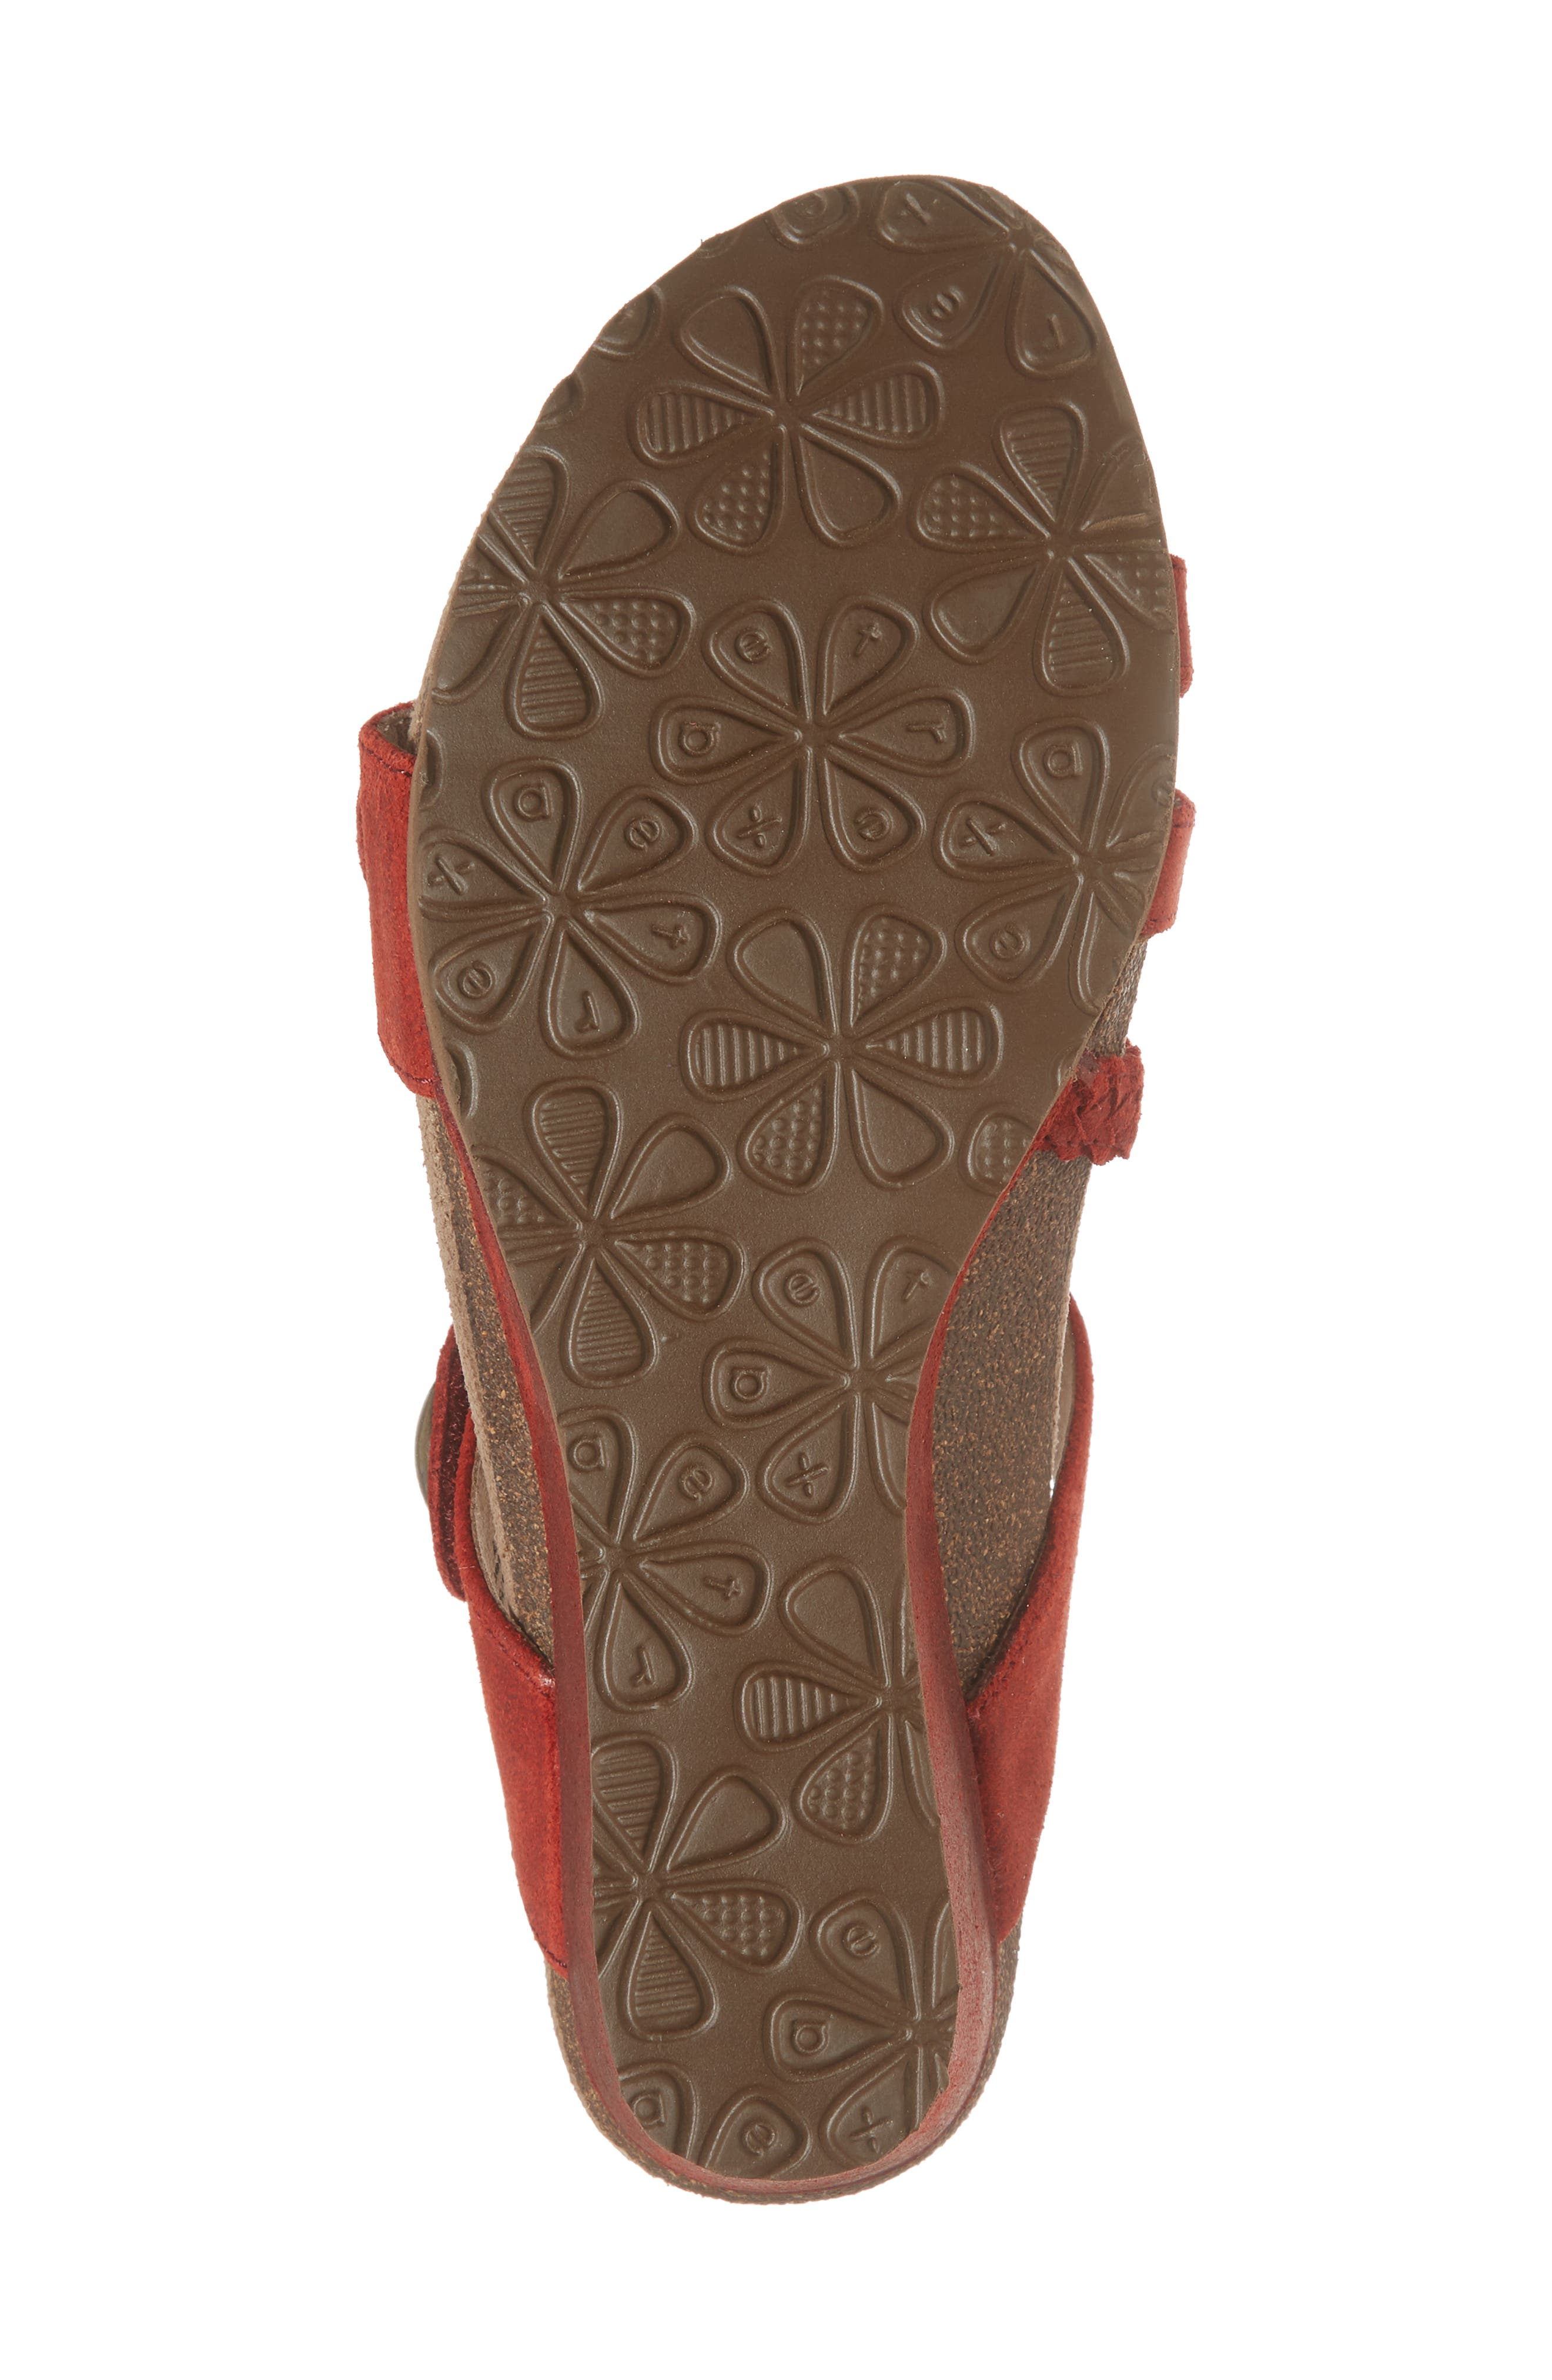 Lydia Strappy Wedge Sandal,                             Alternate thumbnail 6, color,                             Cayenne Leather